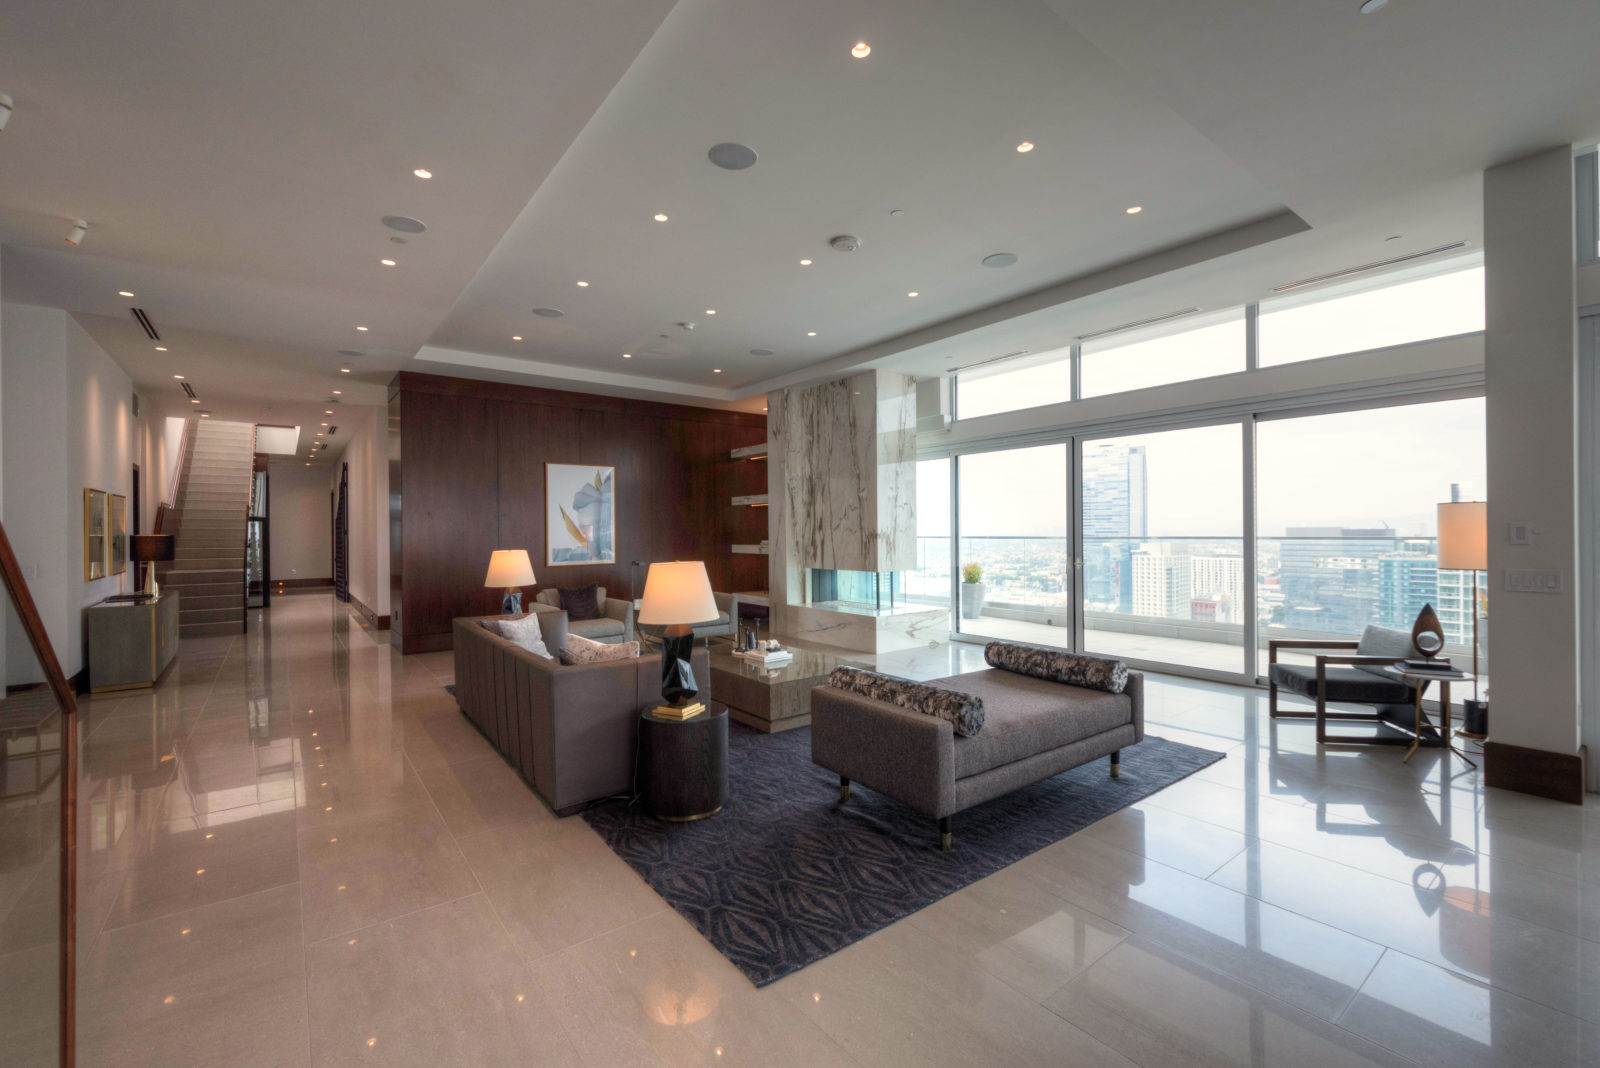 Extraordinary Penthouse With Private Patio/pool/jacuzzi U2013 Wynn Locations    Film Locations   Los Angeles